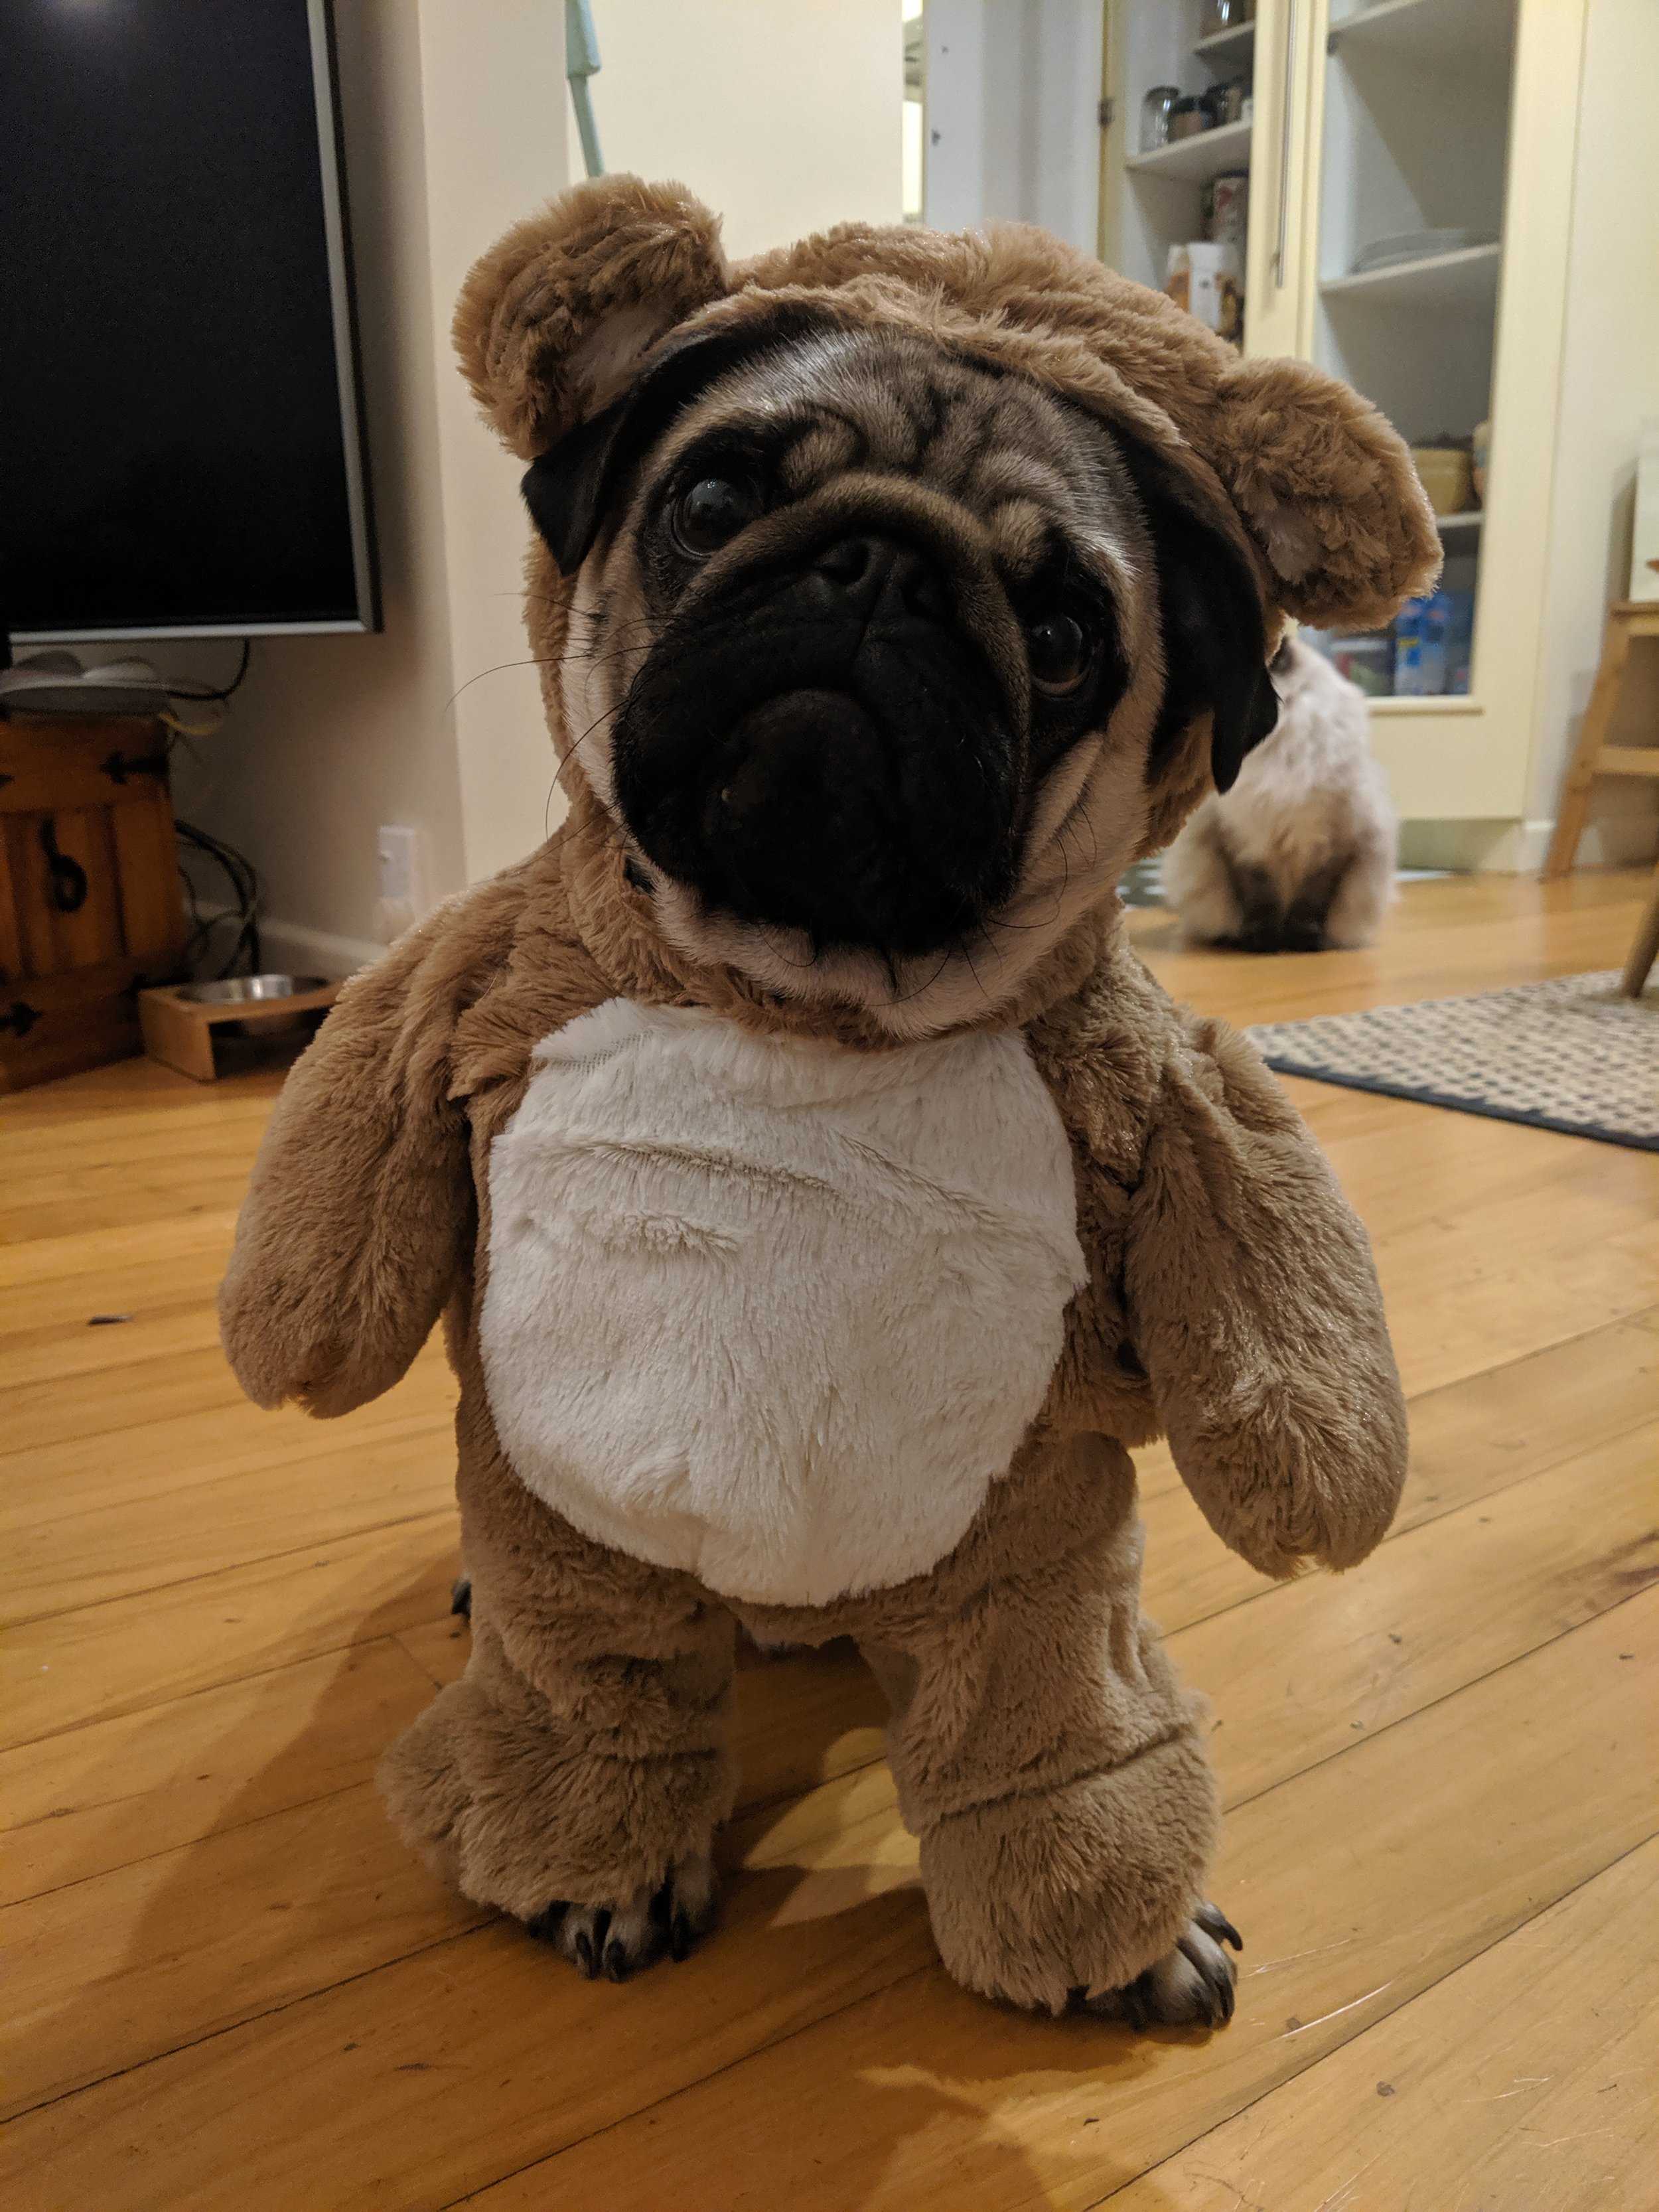 Alix's pug - Alphie wearing a bear costume